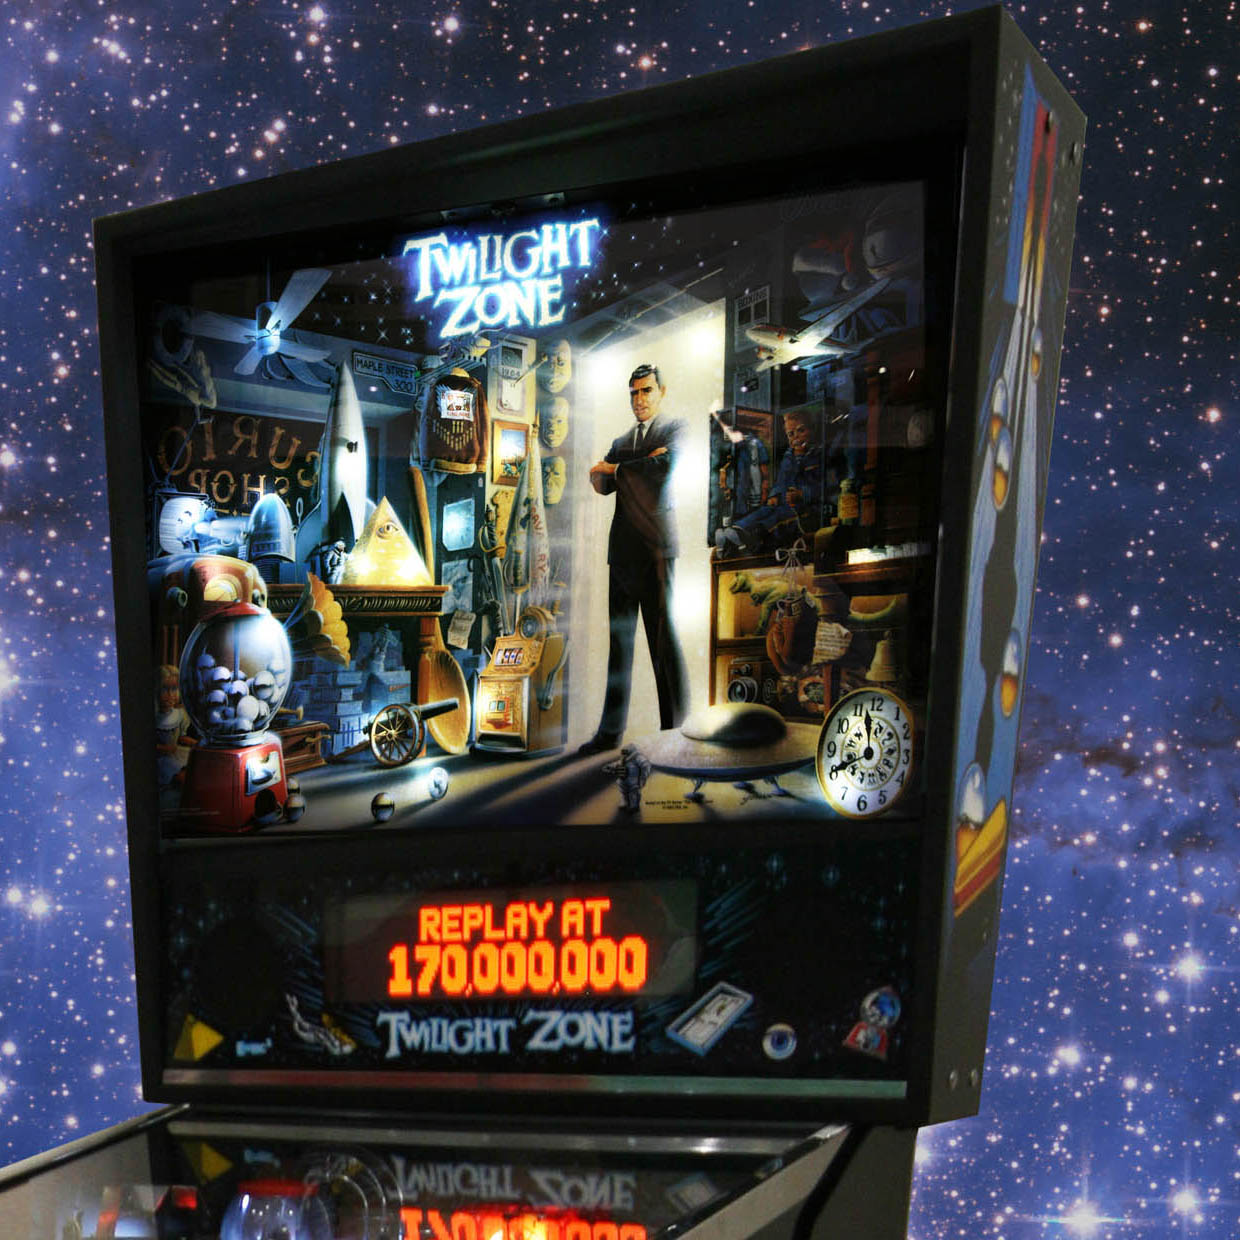 The Twilight Zone Pinball table is out of this world!